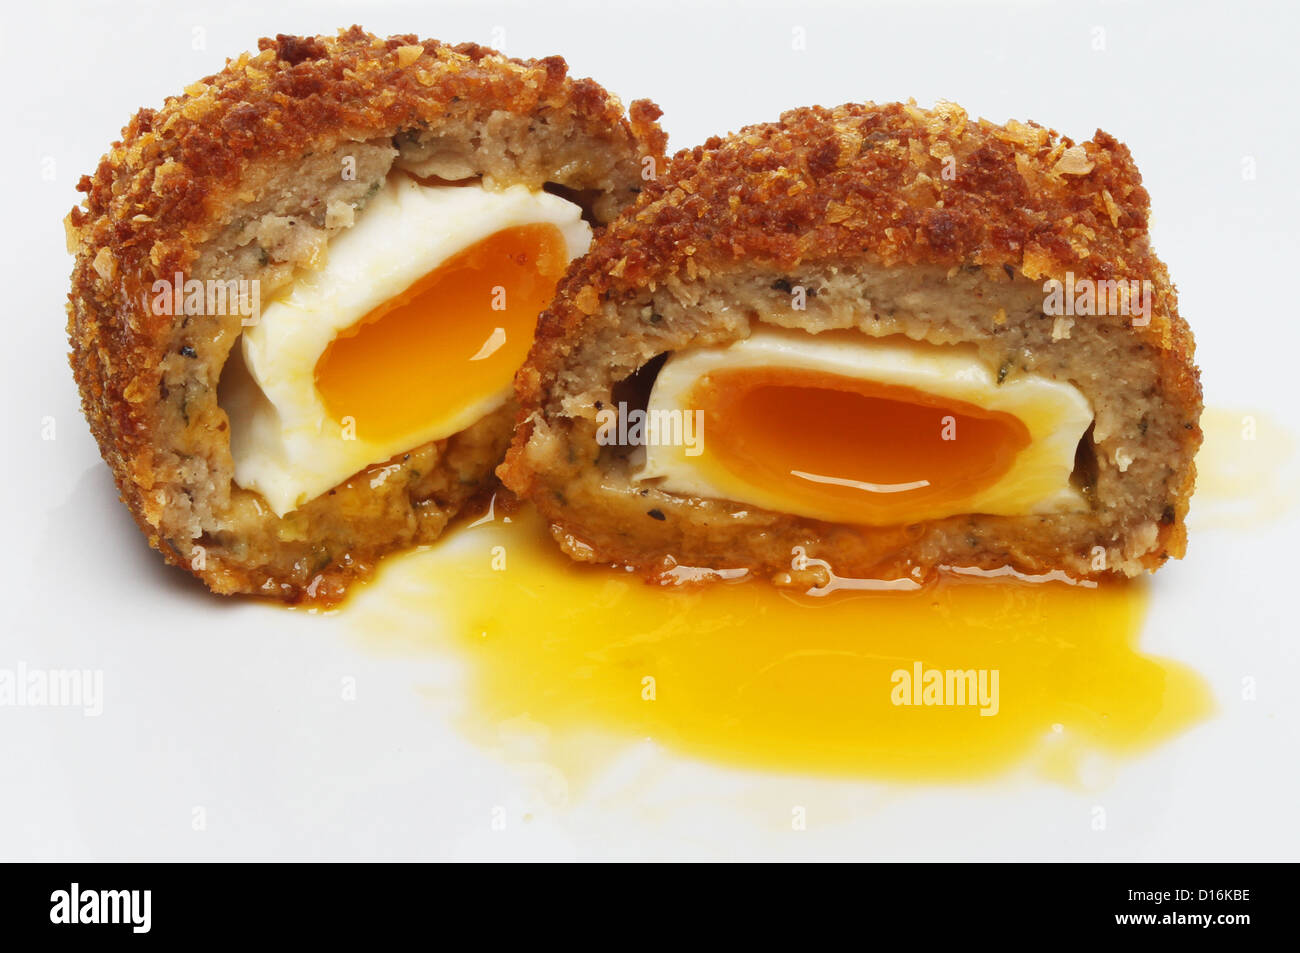 Closeup of a runny yolk Scotch egg on a plate - Stock Image